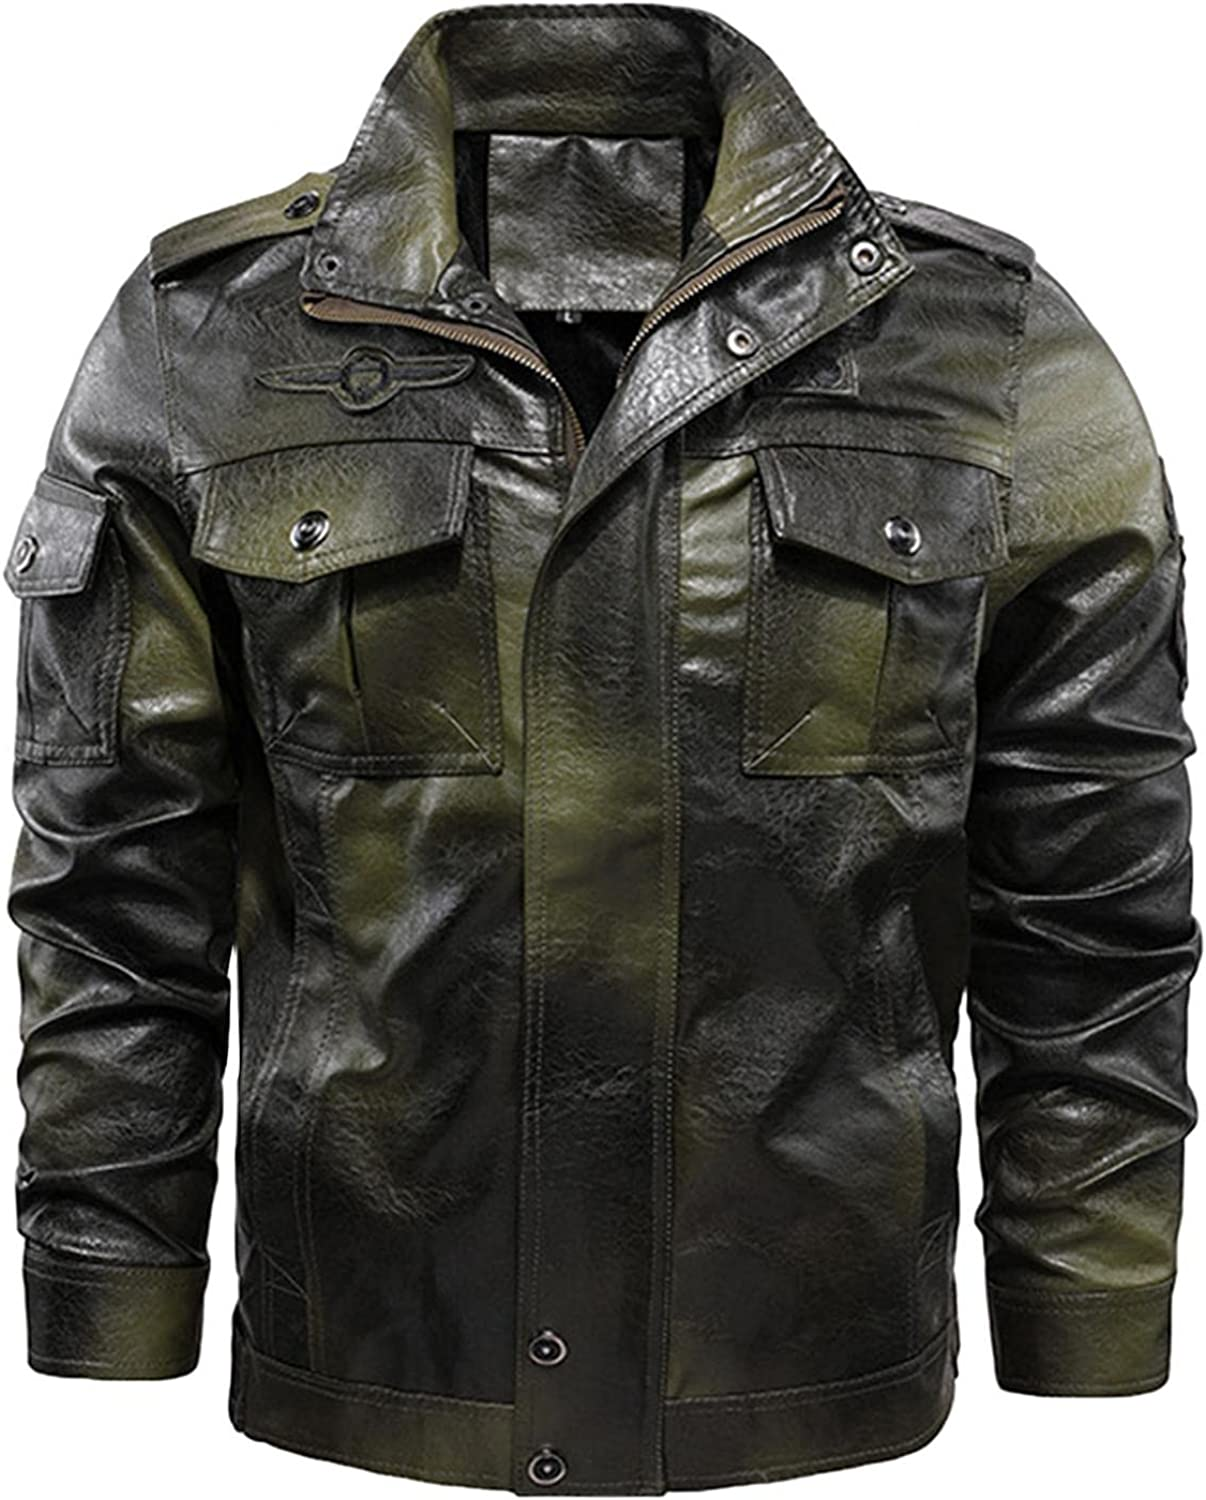 LEIYAN Faux Leather Jacket for Men Zip Up Long Sleeve Stand Collar Winter Vintage Cargo Military Slim Fit Biker Coat